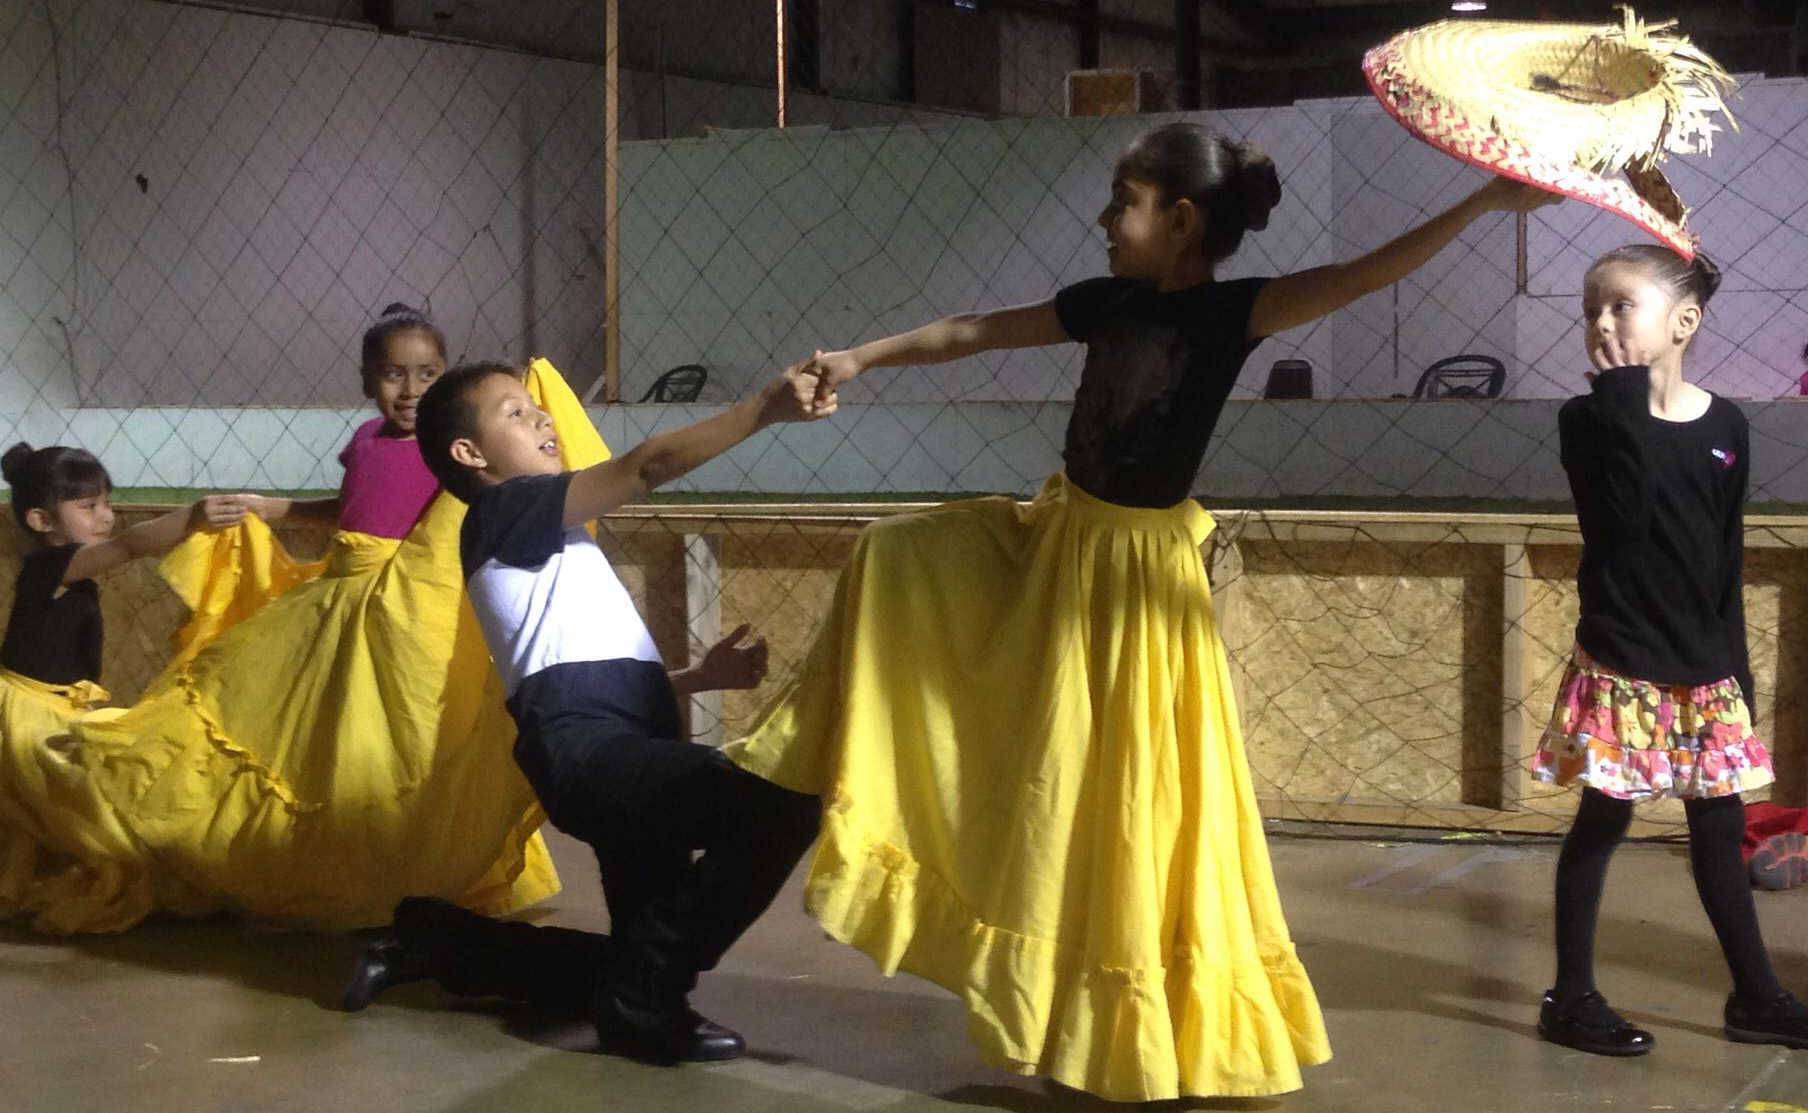 Johan Sanchez, 11, from Elgin, and Janeth Ortega, 8, from Streamwood, practice with Ballet Folklorico Girasol Thursday next to the indoor soccer court at Grand Plaza El Mesias mall in Elgin. The group hopes to find a more suitable space for practice.